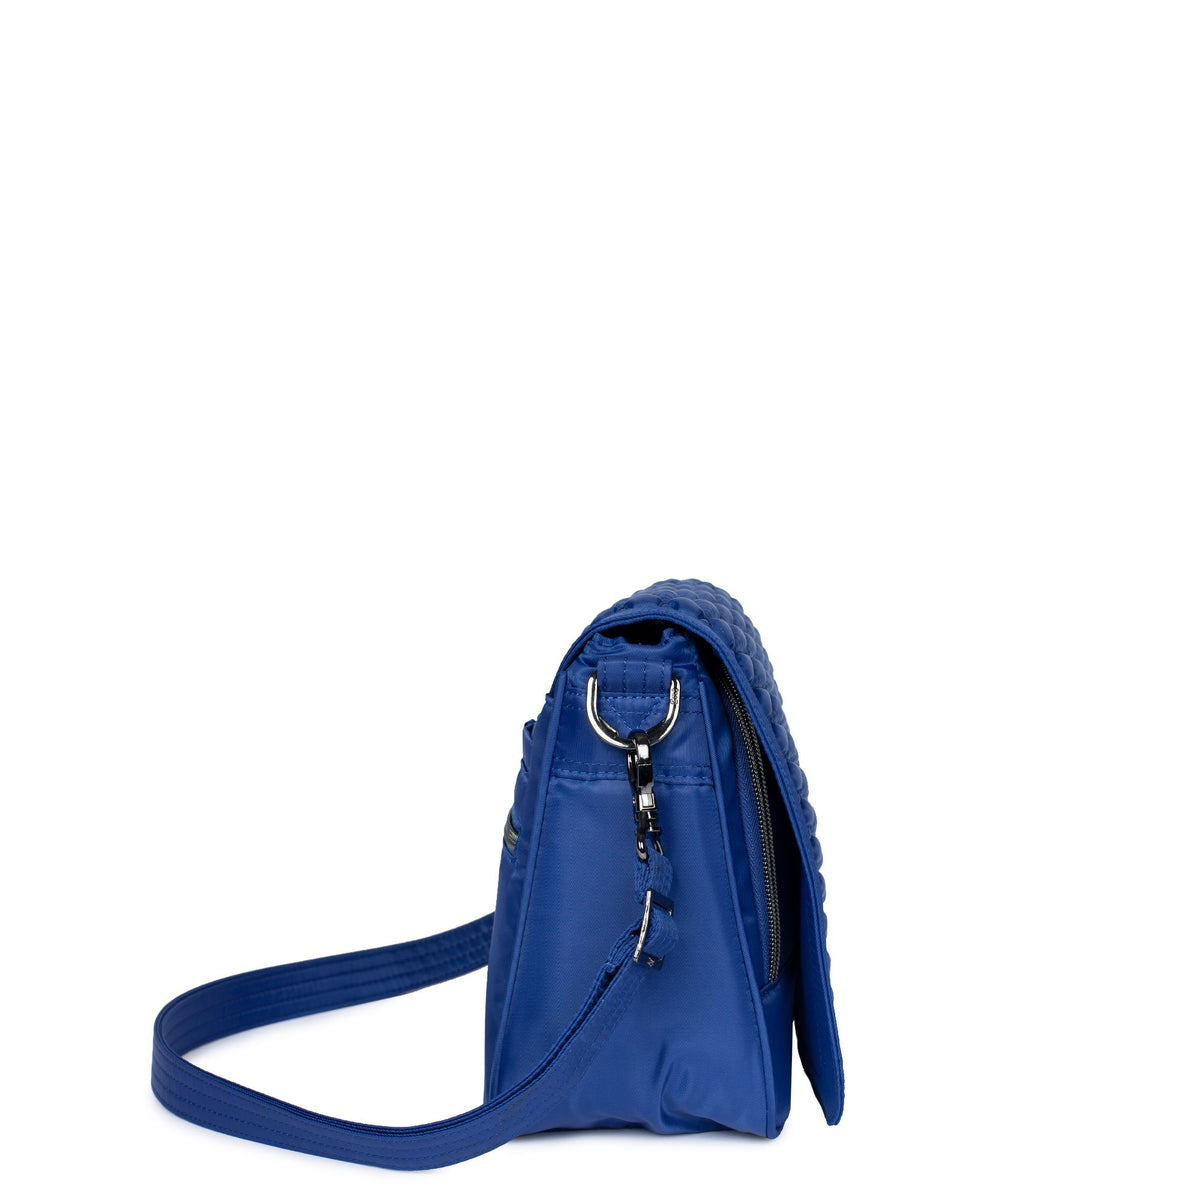 Presto Convertible Crossbody Bag